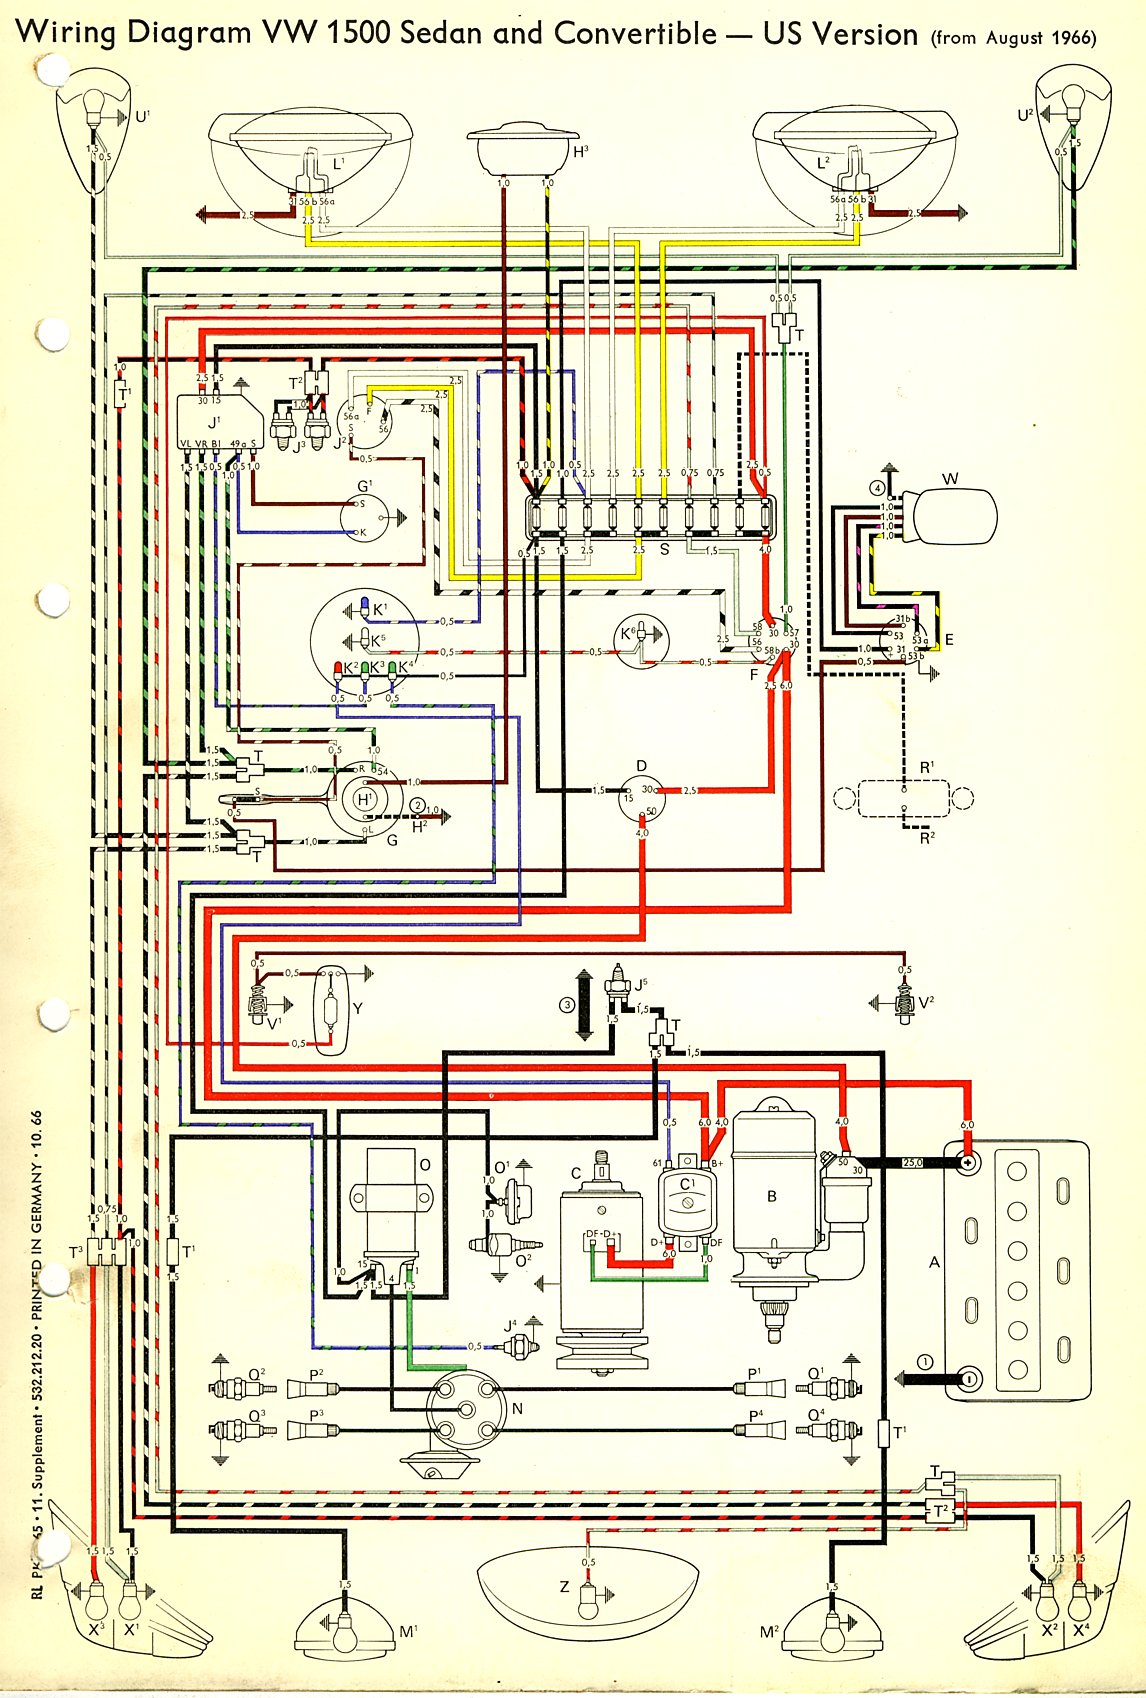 bug_67_USA thesamba com type 1 wiring diagrams wiring schematics at n-0.co